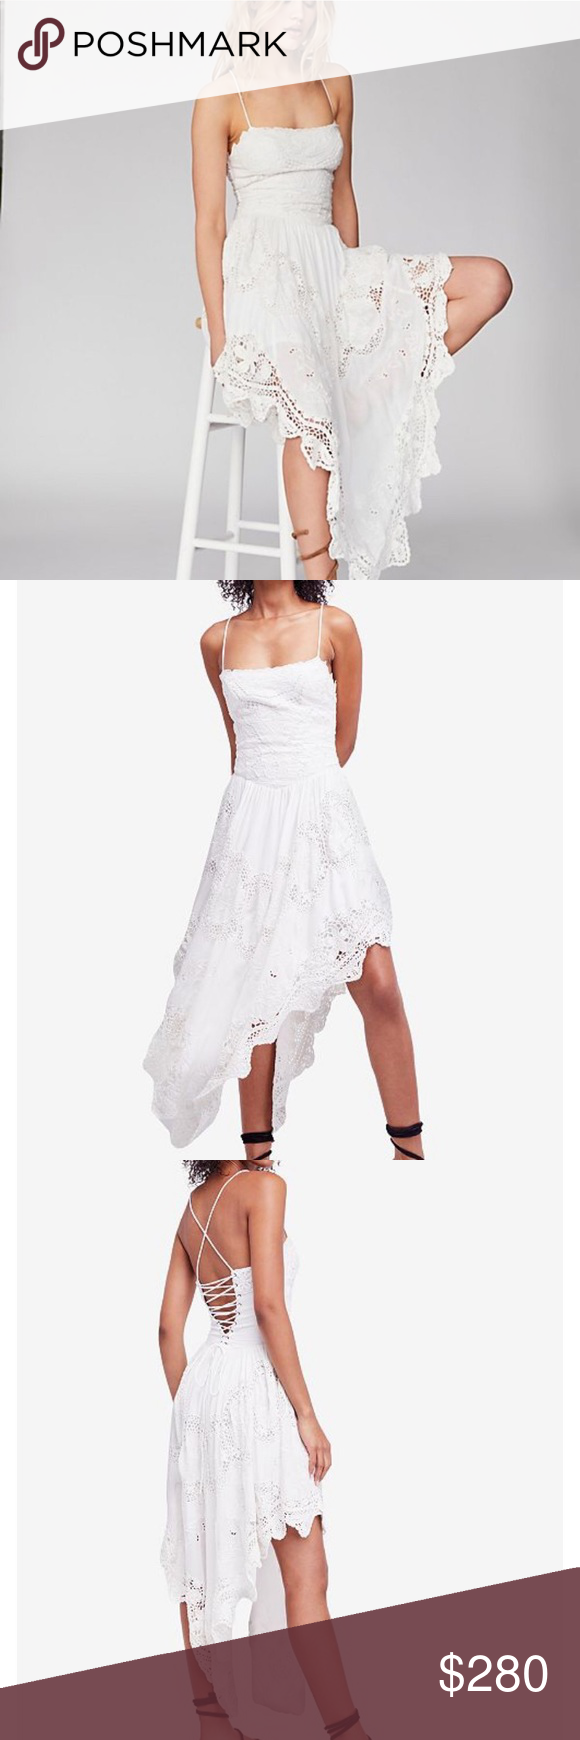 e092736d0849 Free People Love to Love You Cutwork Dress Absolutely Gorgeous! Free People  Love to Live You Cutwork Dress • True White • Asymmetrical Hem • Lace Up  Back ...